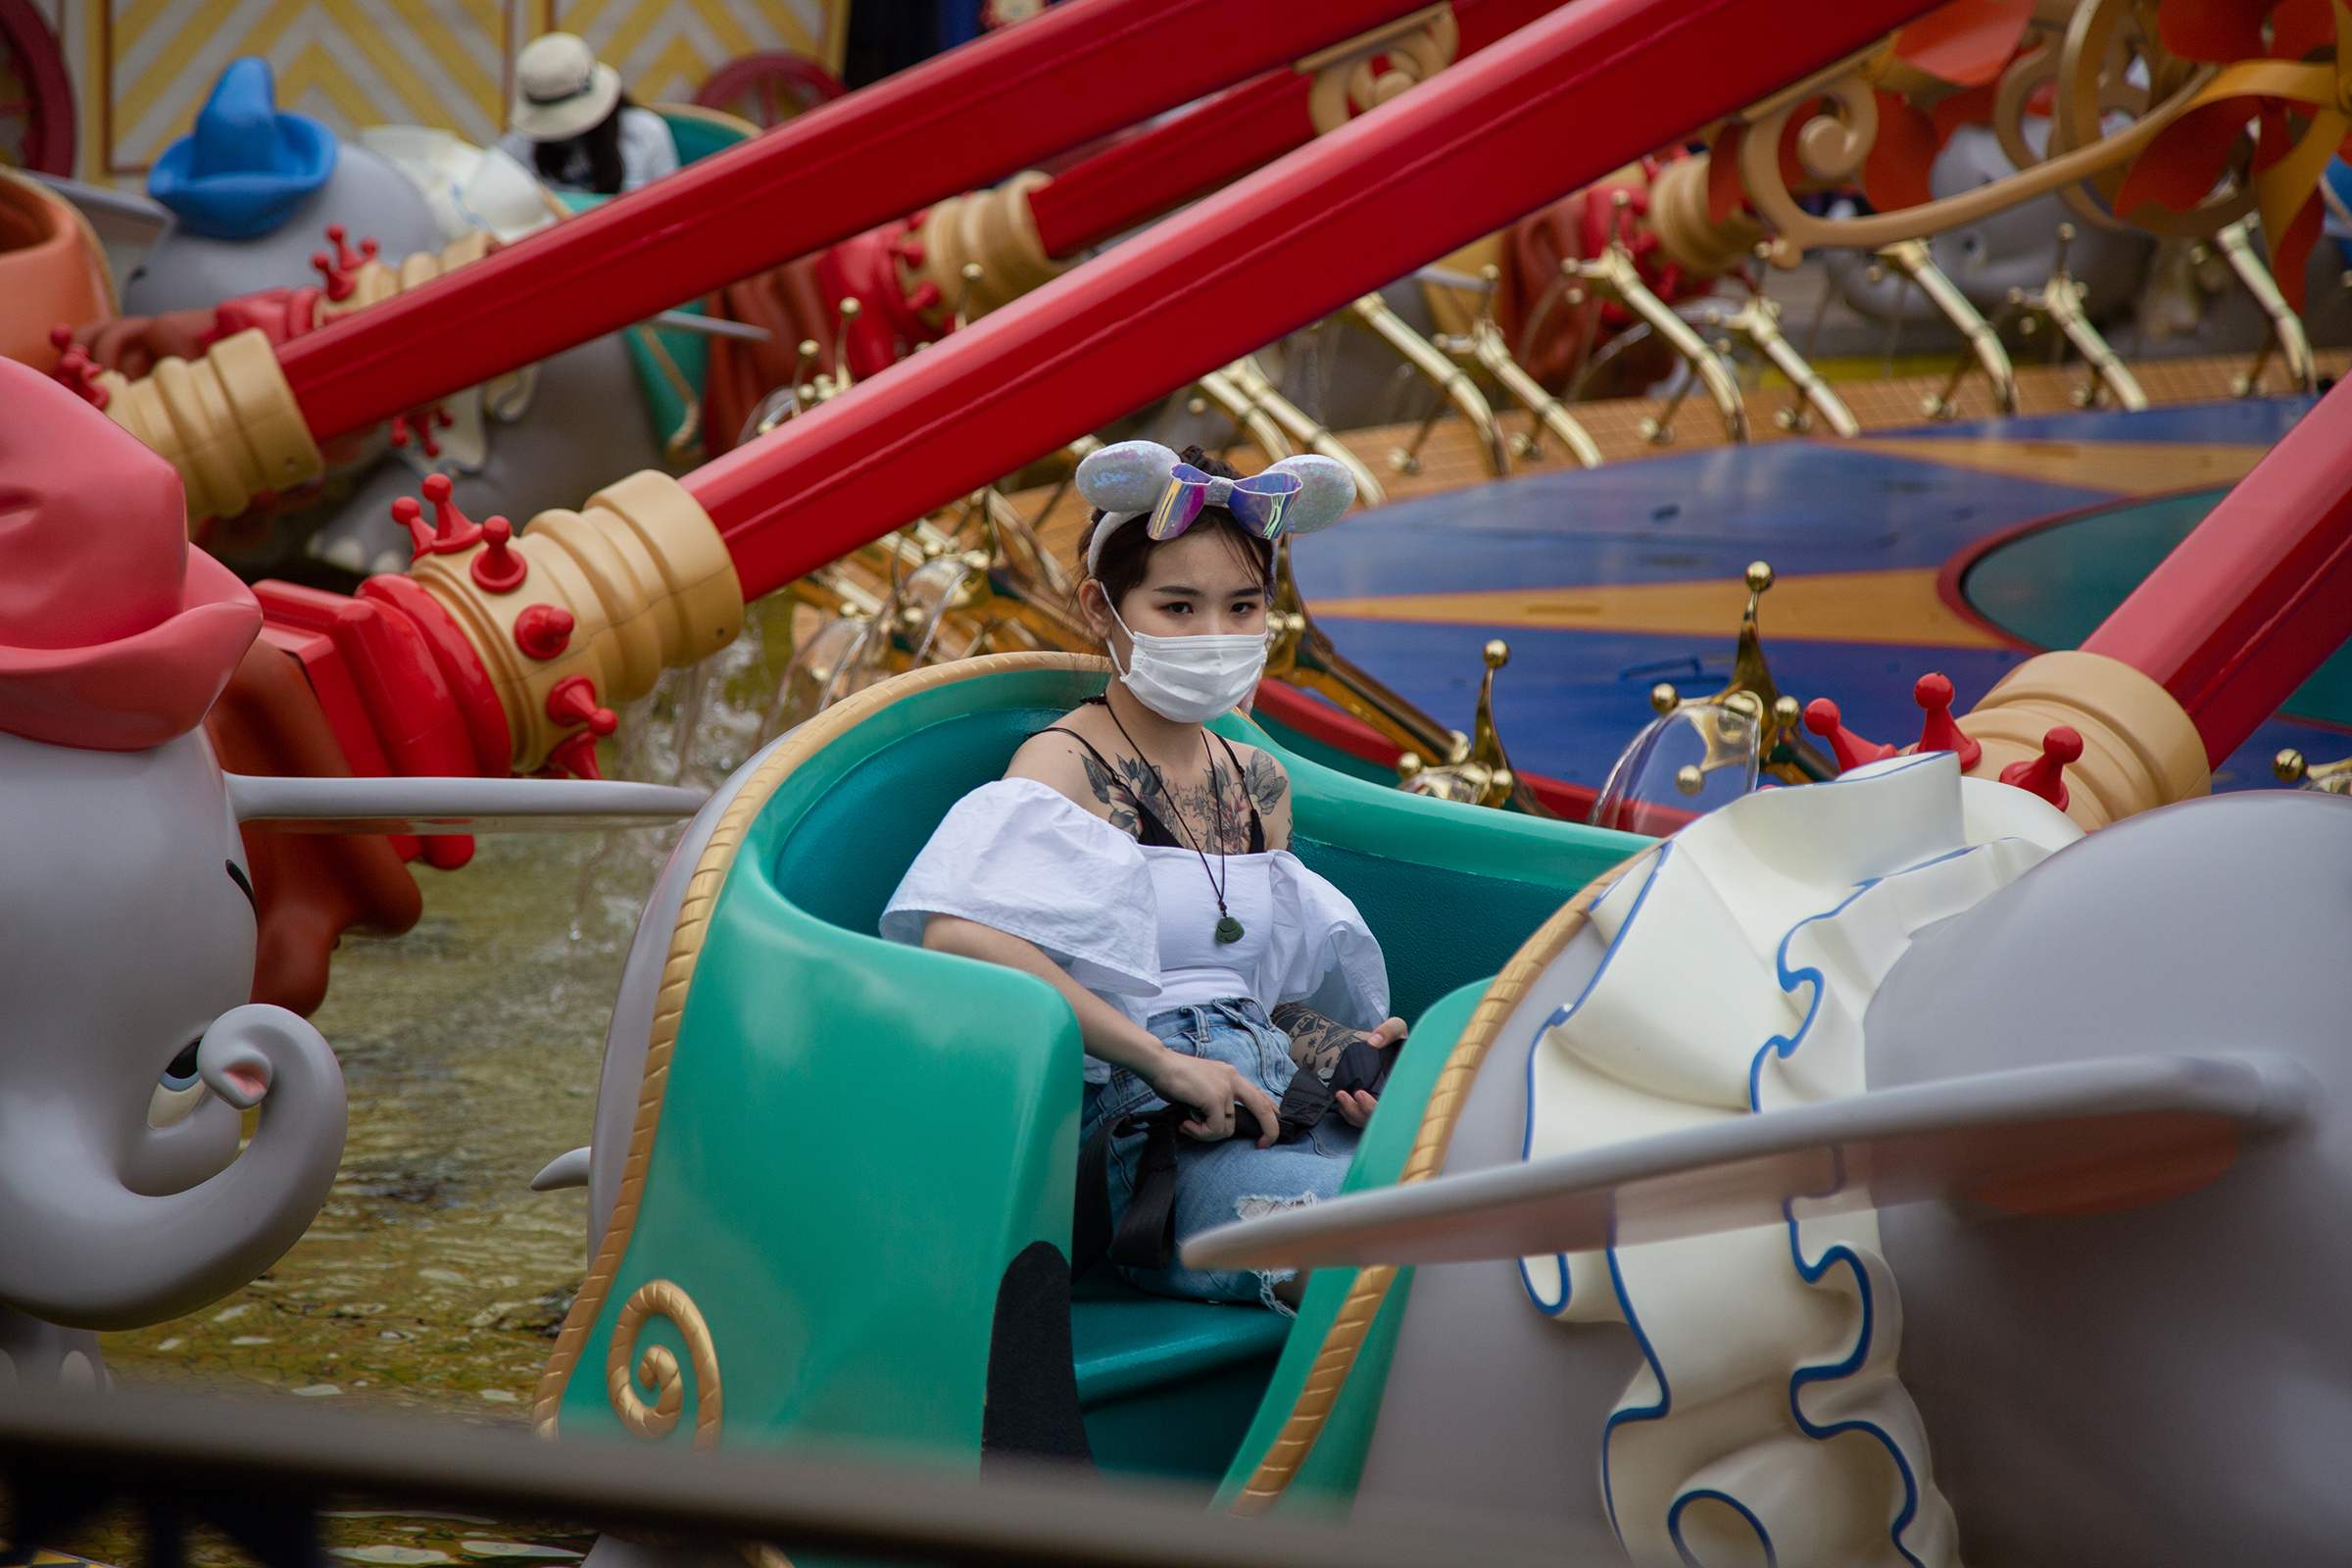 A visitor sits on the Dumbo the Flying Elephant attraction at Shanghai Disneyland on May 11, the day it reopened.